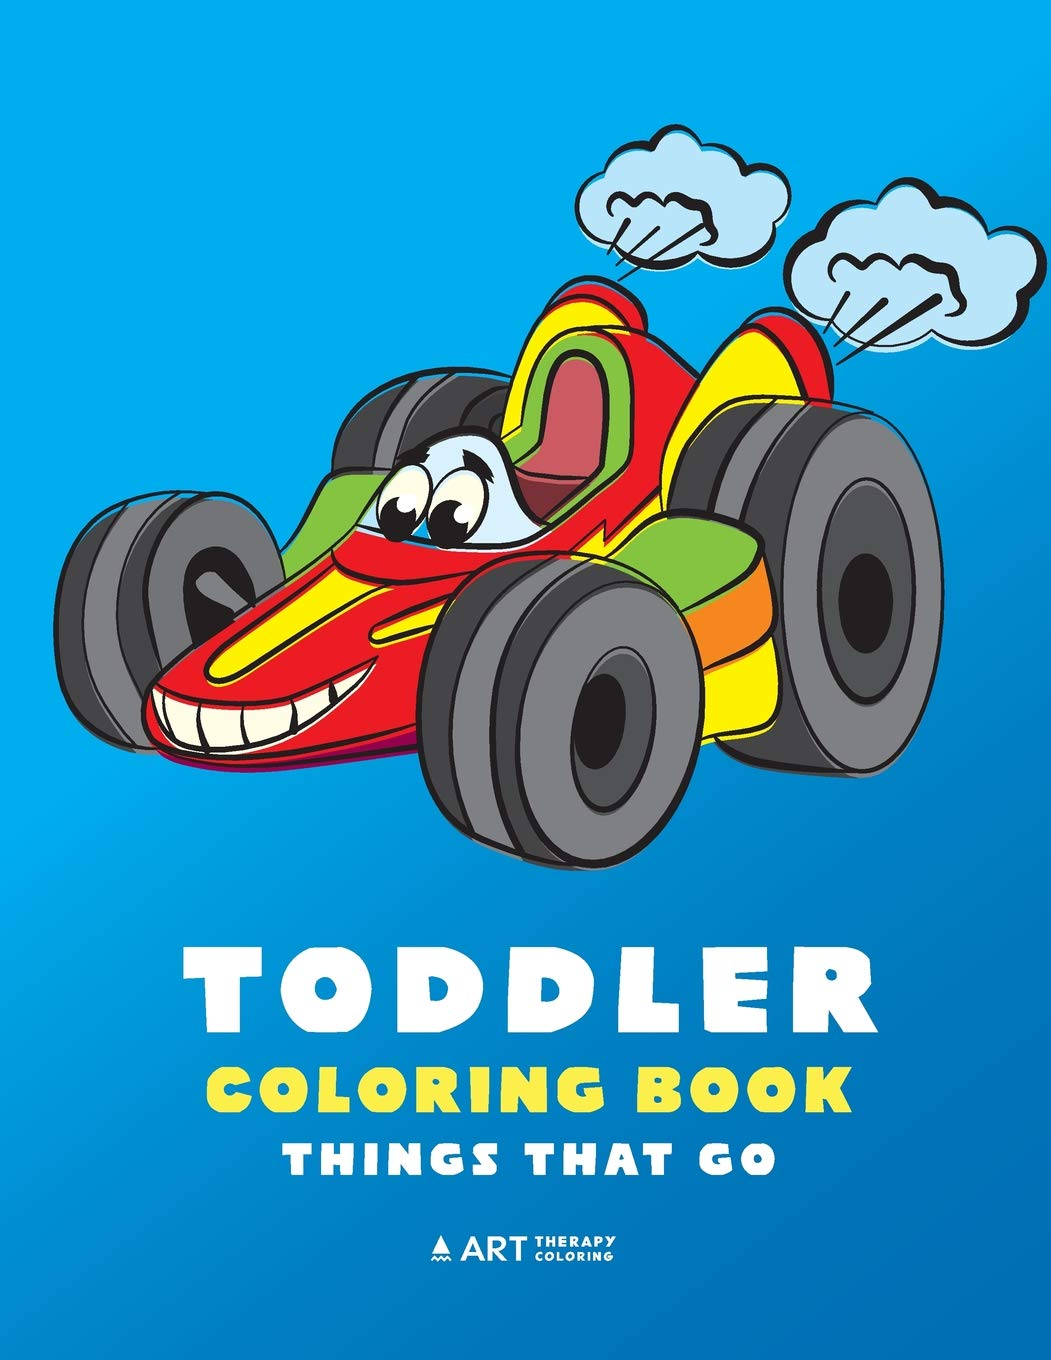 tractors trucks coloring book for kids 2-4 Toddler Coloring Book: 100 pages of things that go: Cars trains